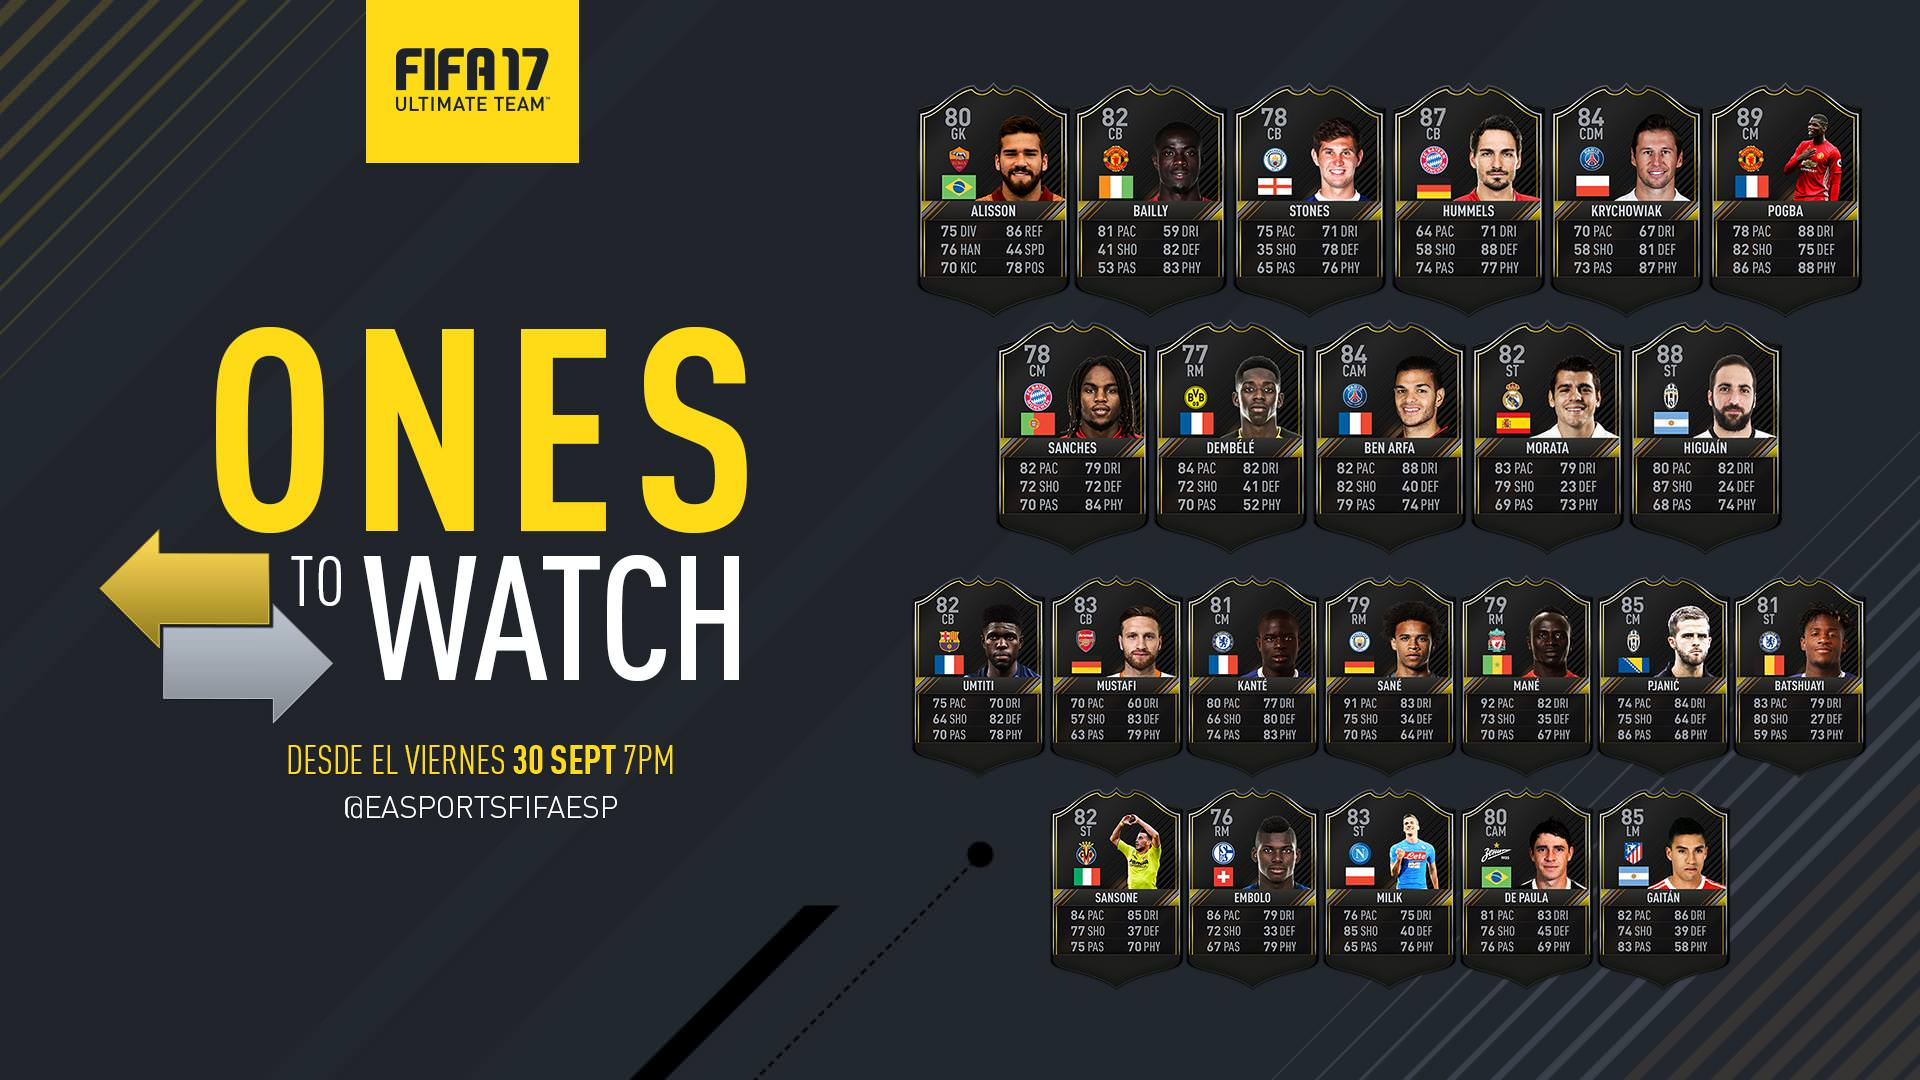 FIFA 17 Ones to Watch